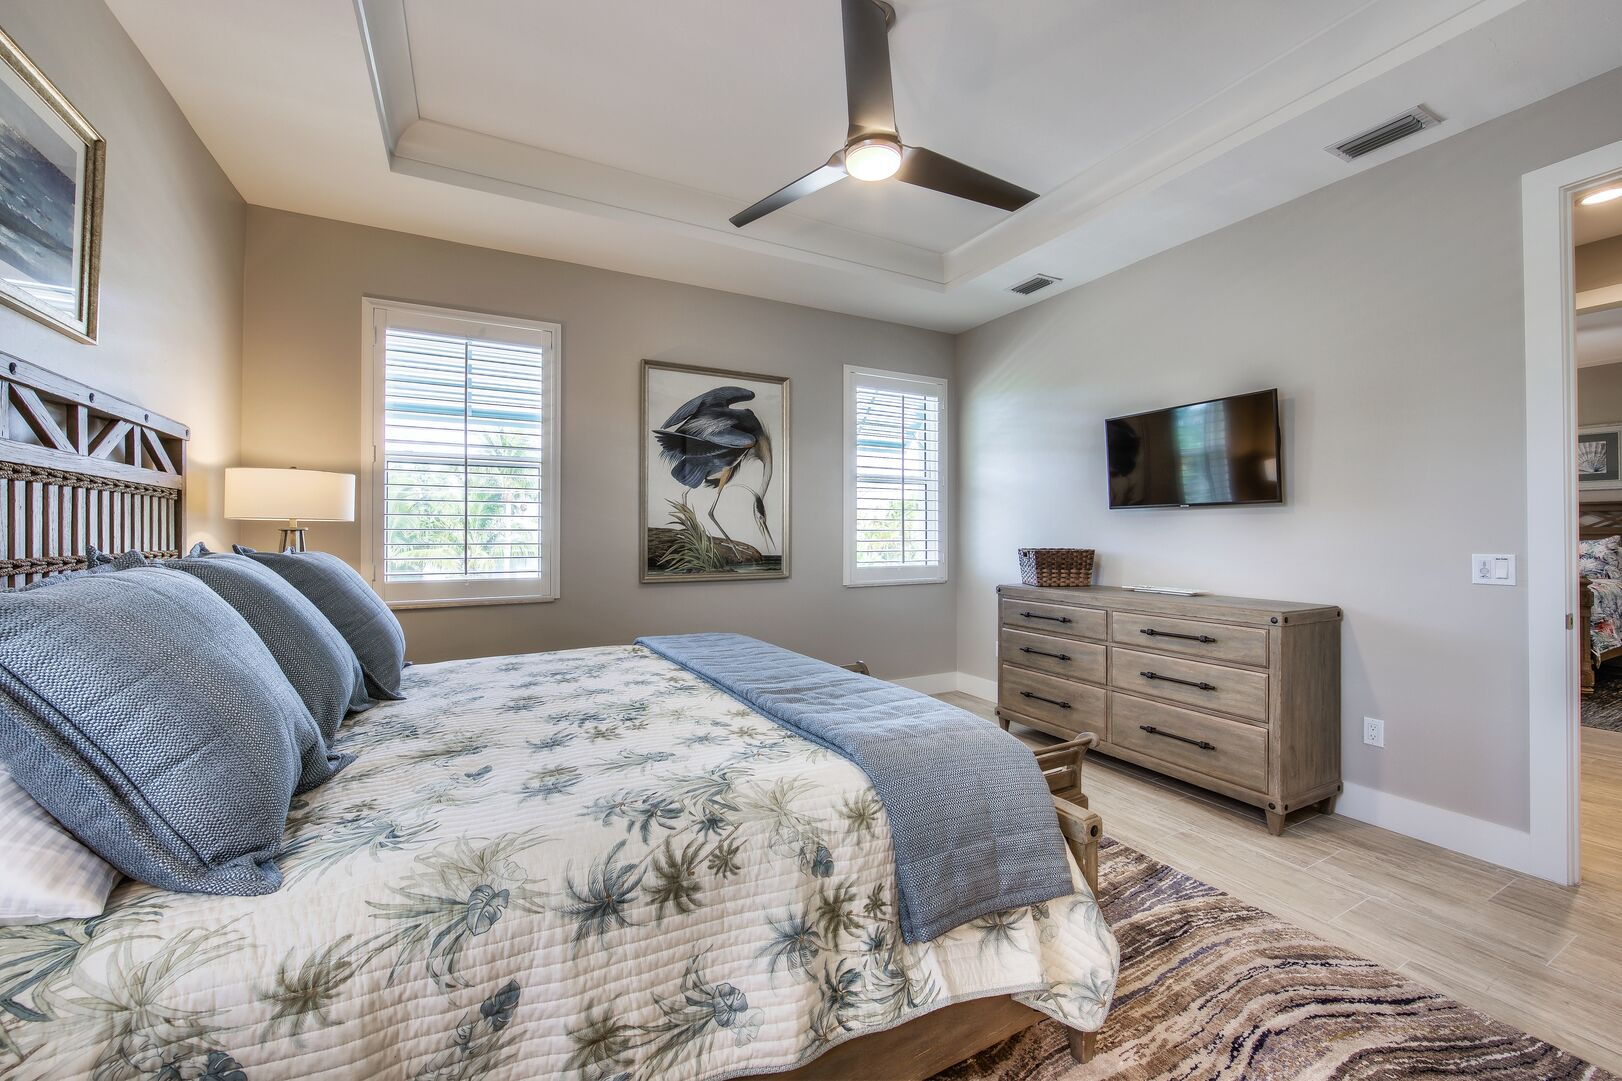 Master Bedroom with TV and Large Bed